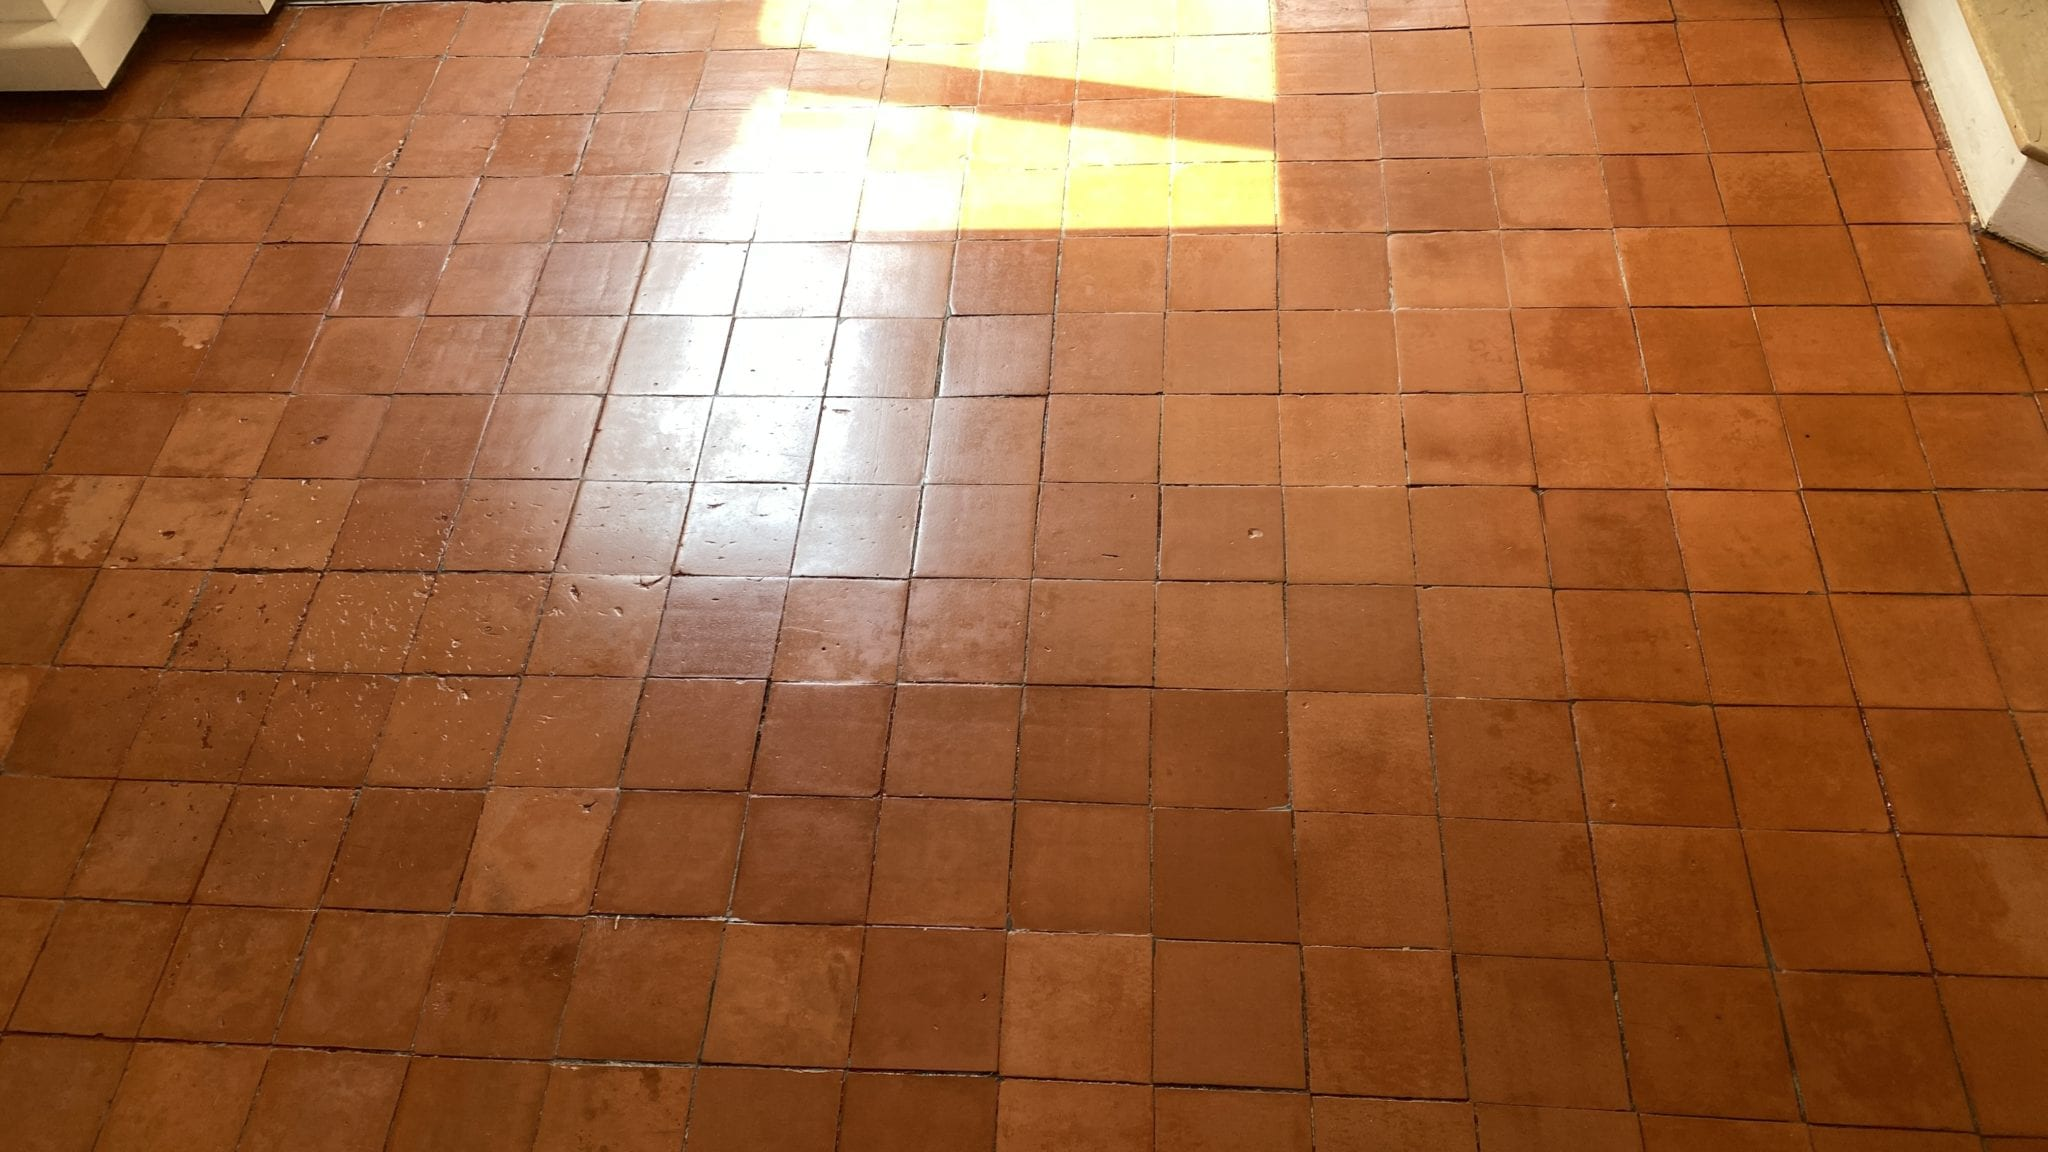 Quarry tile cleaning results after removing paint